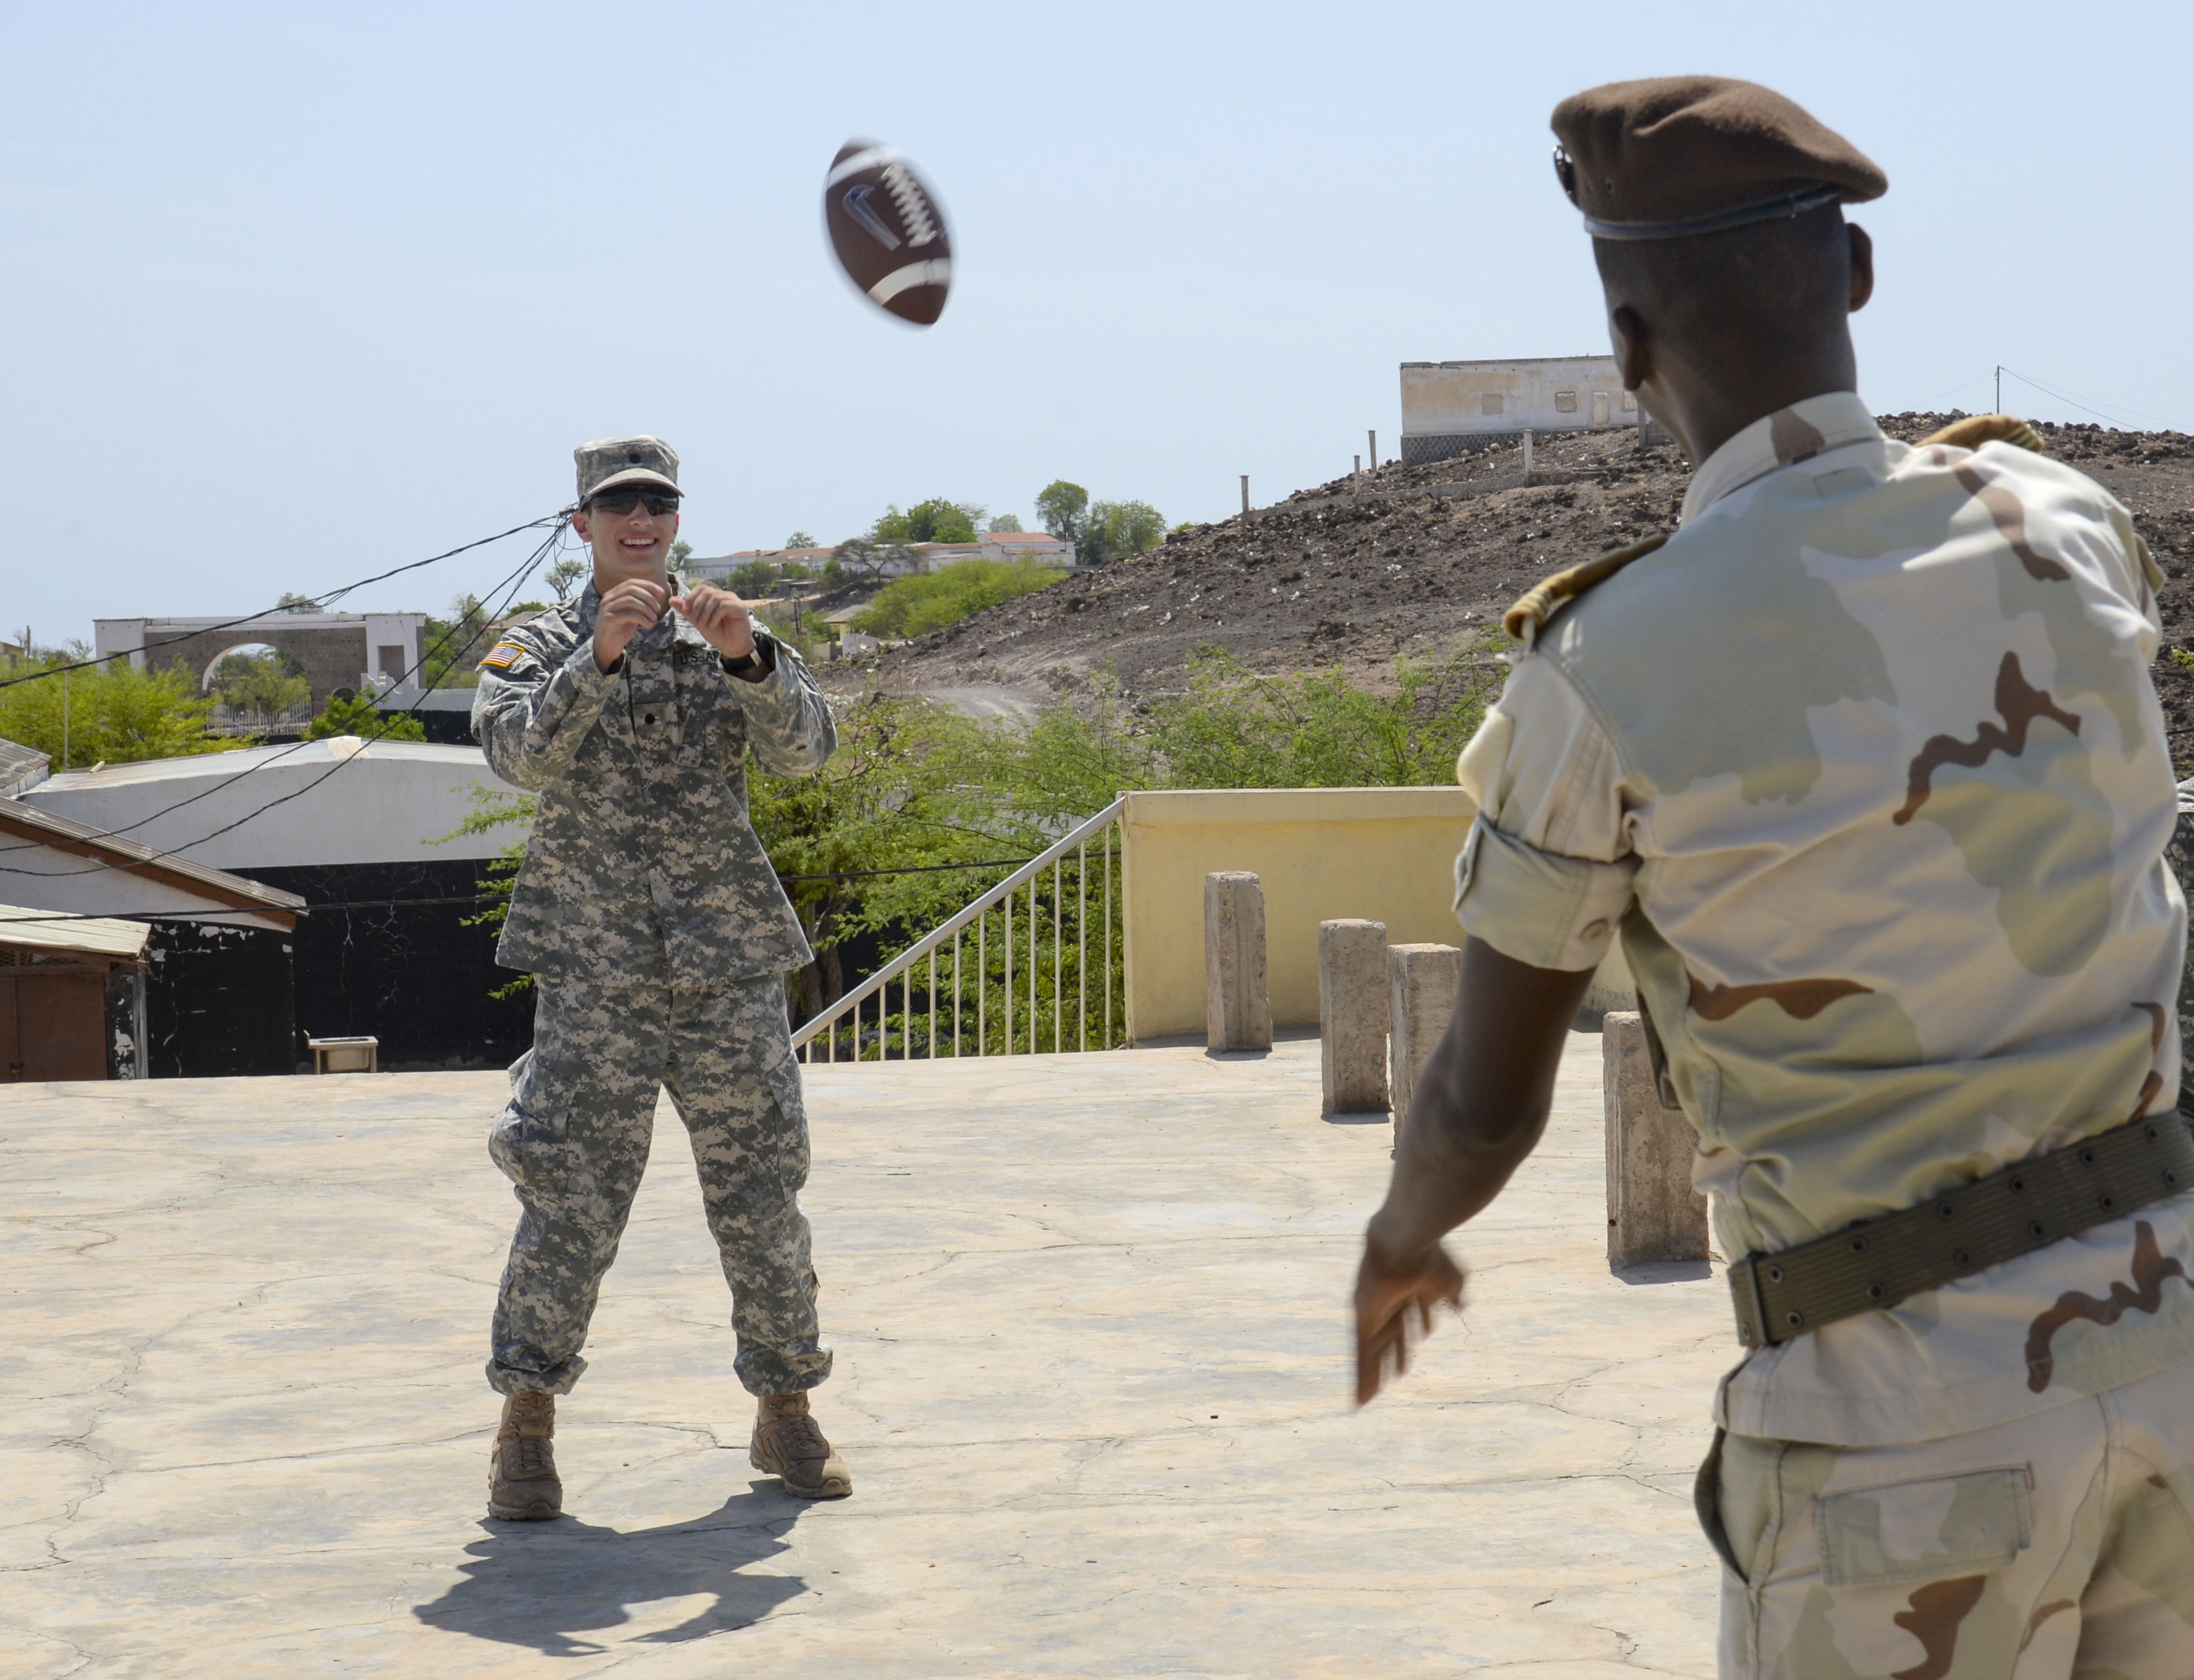 Nick Lange, a U.S. Army Reserve Officer Training Corp cadet from Clemson University, throws a football to a Djiboutian Army weapons instructor during a break at the Djiboutian Army Academy in Arta, Djibouti, July 25, 2016. The cadets are spending three weeks with the Djiboutian Army in a culture exchange program, where they are learning each other's language and methods of military operations. (U.S. Air Force photo by Staff Sgt. Benjamin Raughton/Released)